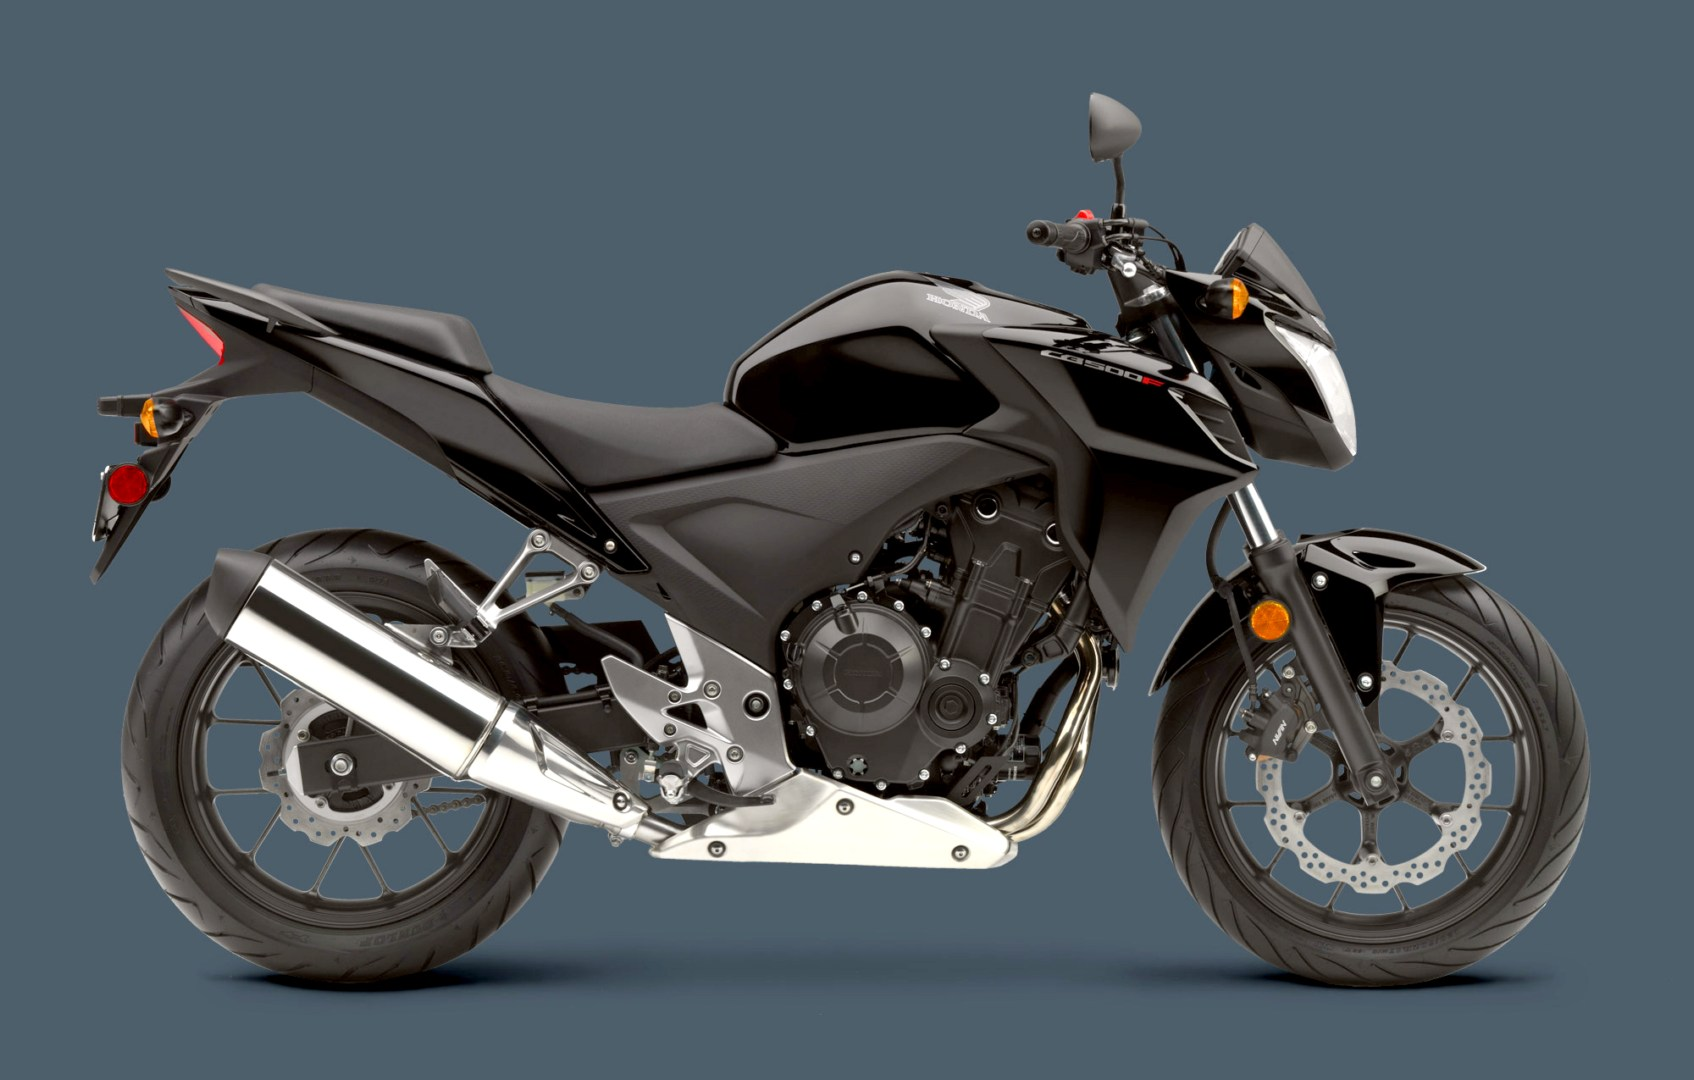 2013 Honda CB500F Detailed, Official Price Revealed